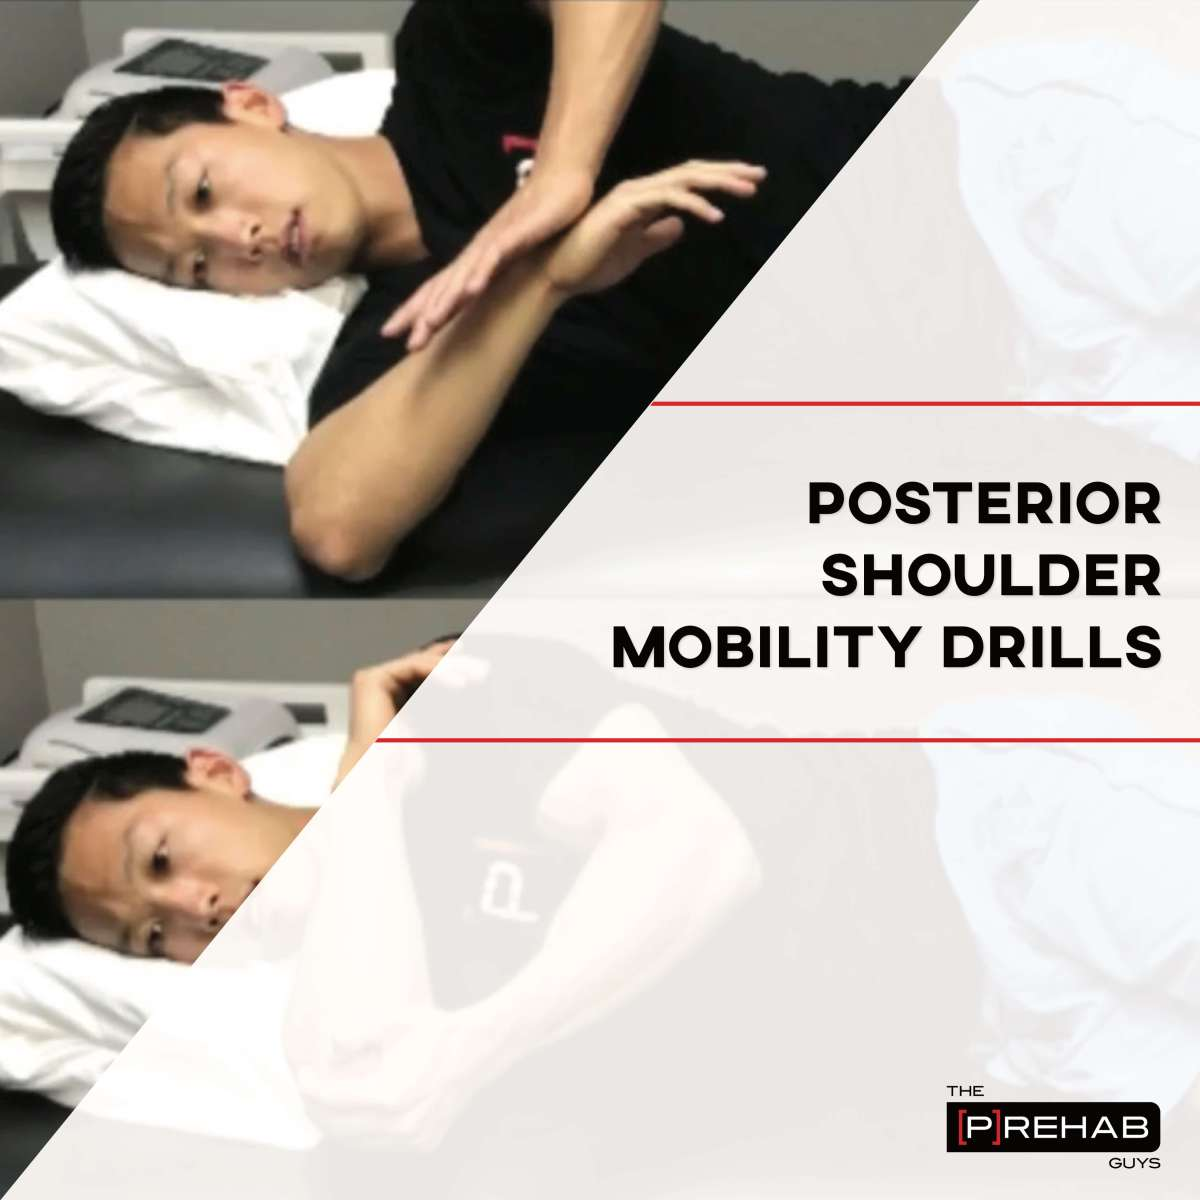 Posterior Shoulder Mobility Drills